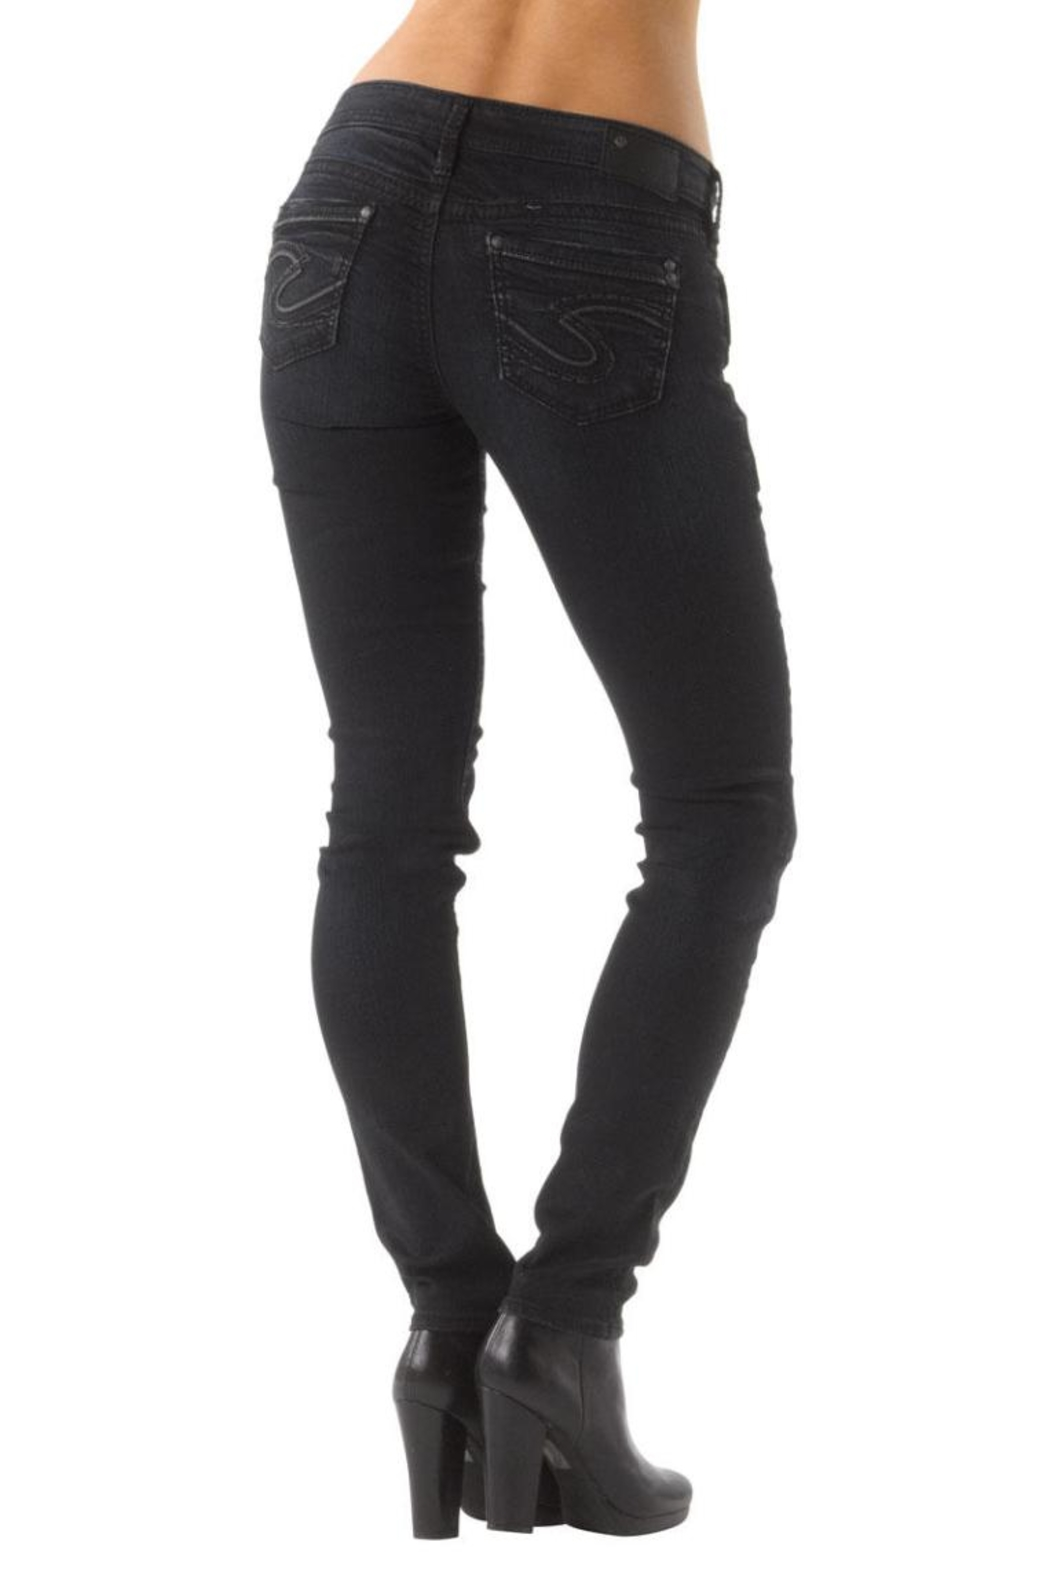 Silver Jeans Co. Aiko Dark-Wash Skinny - Front Full Image